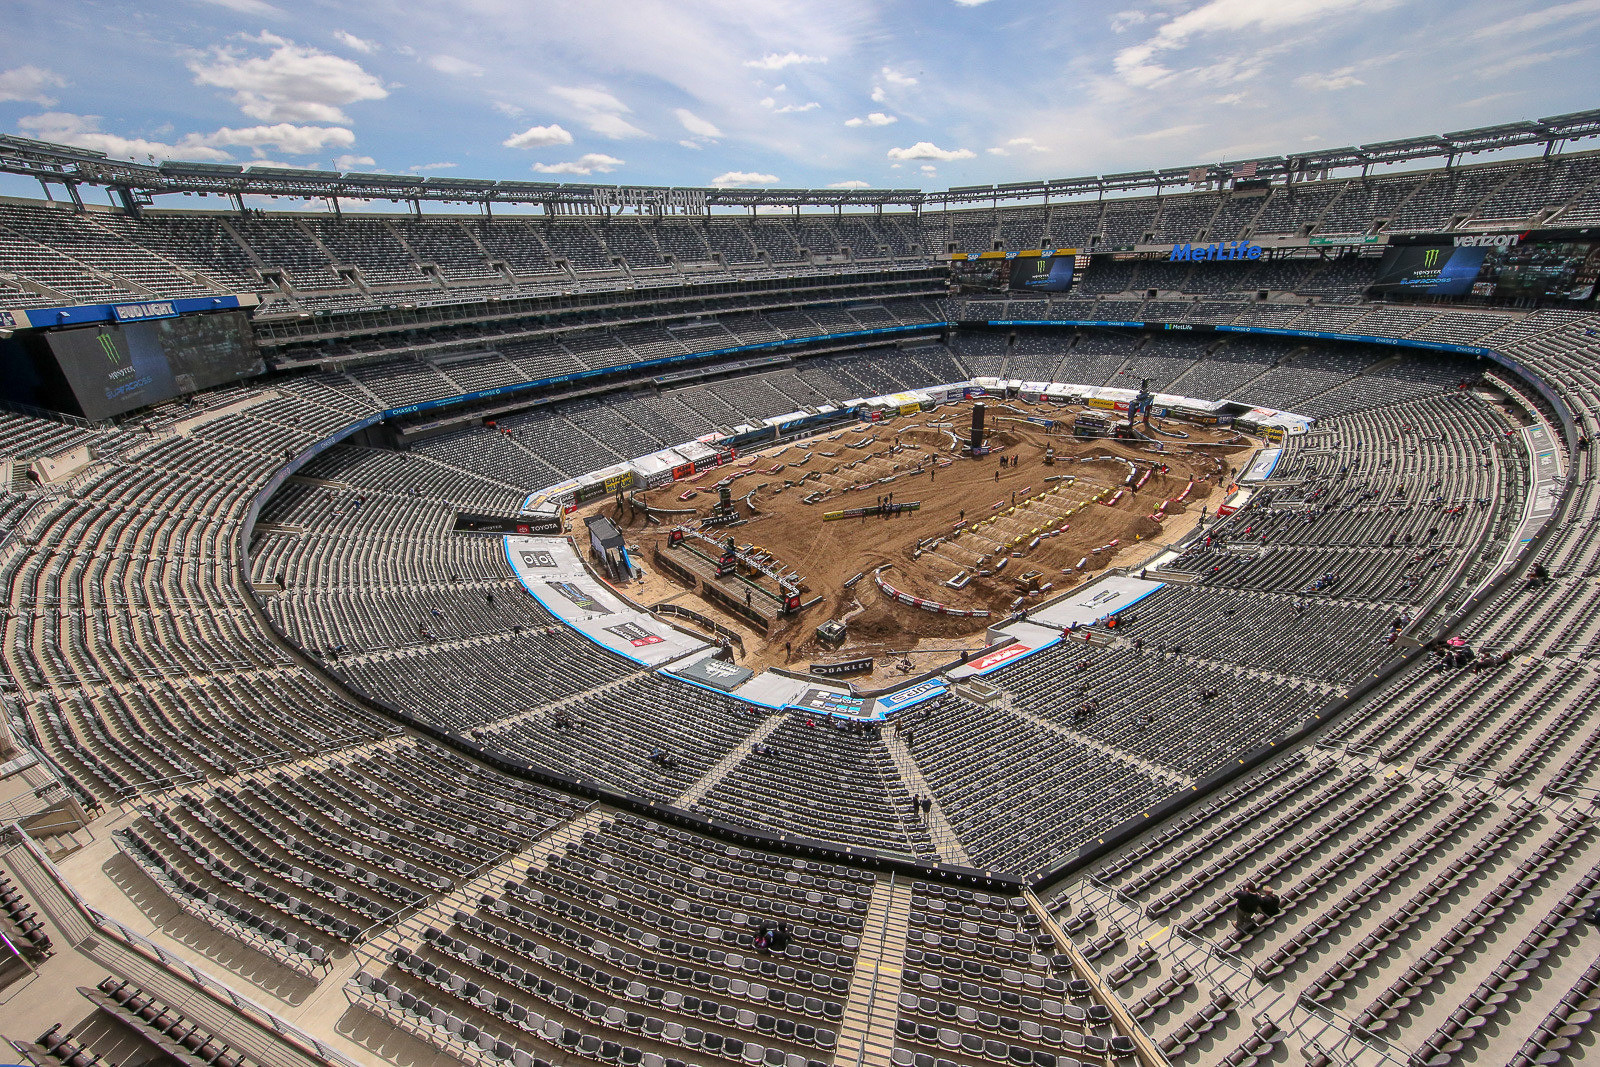 Met Life Stadium is a favorite of the riders and teams. With its proximity to New York City, it definitely adds some excitement to the paddock.